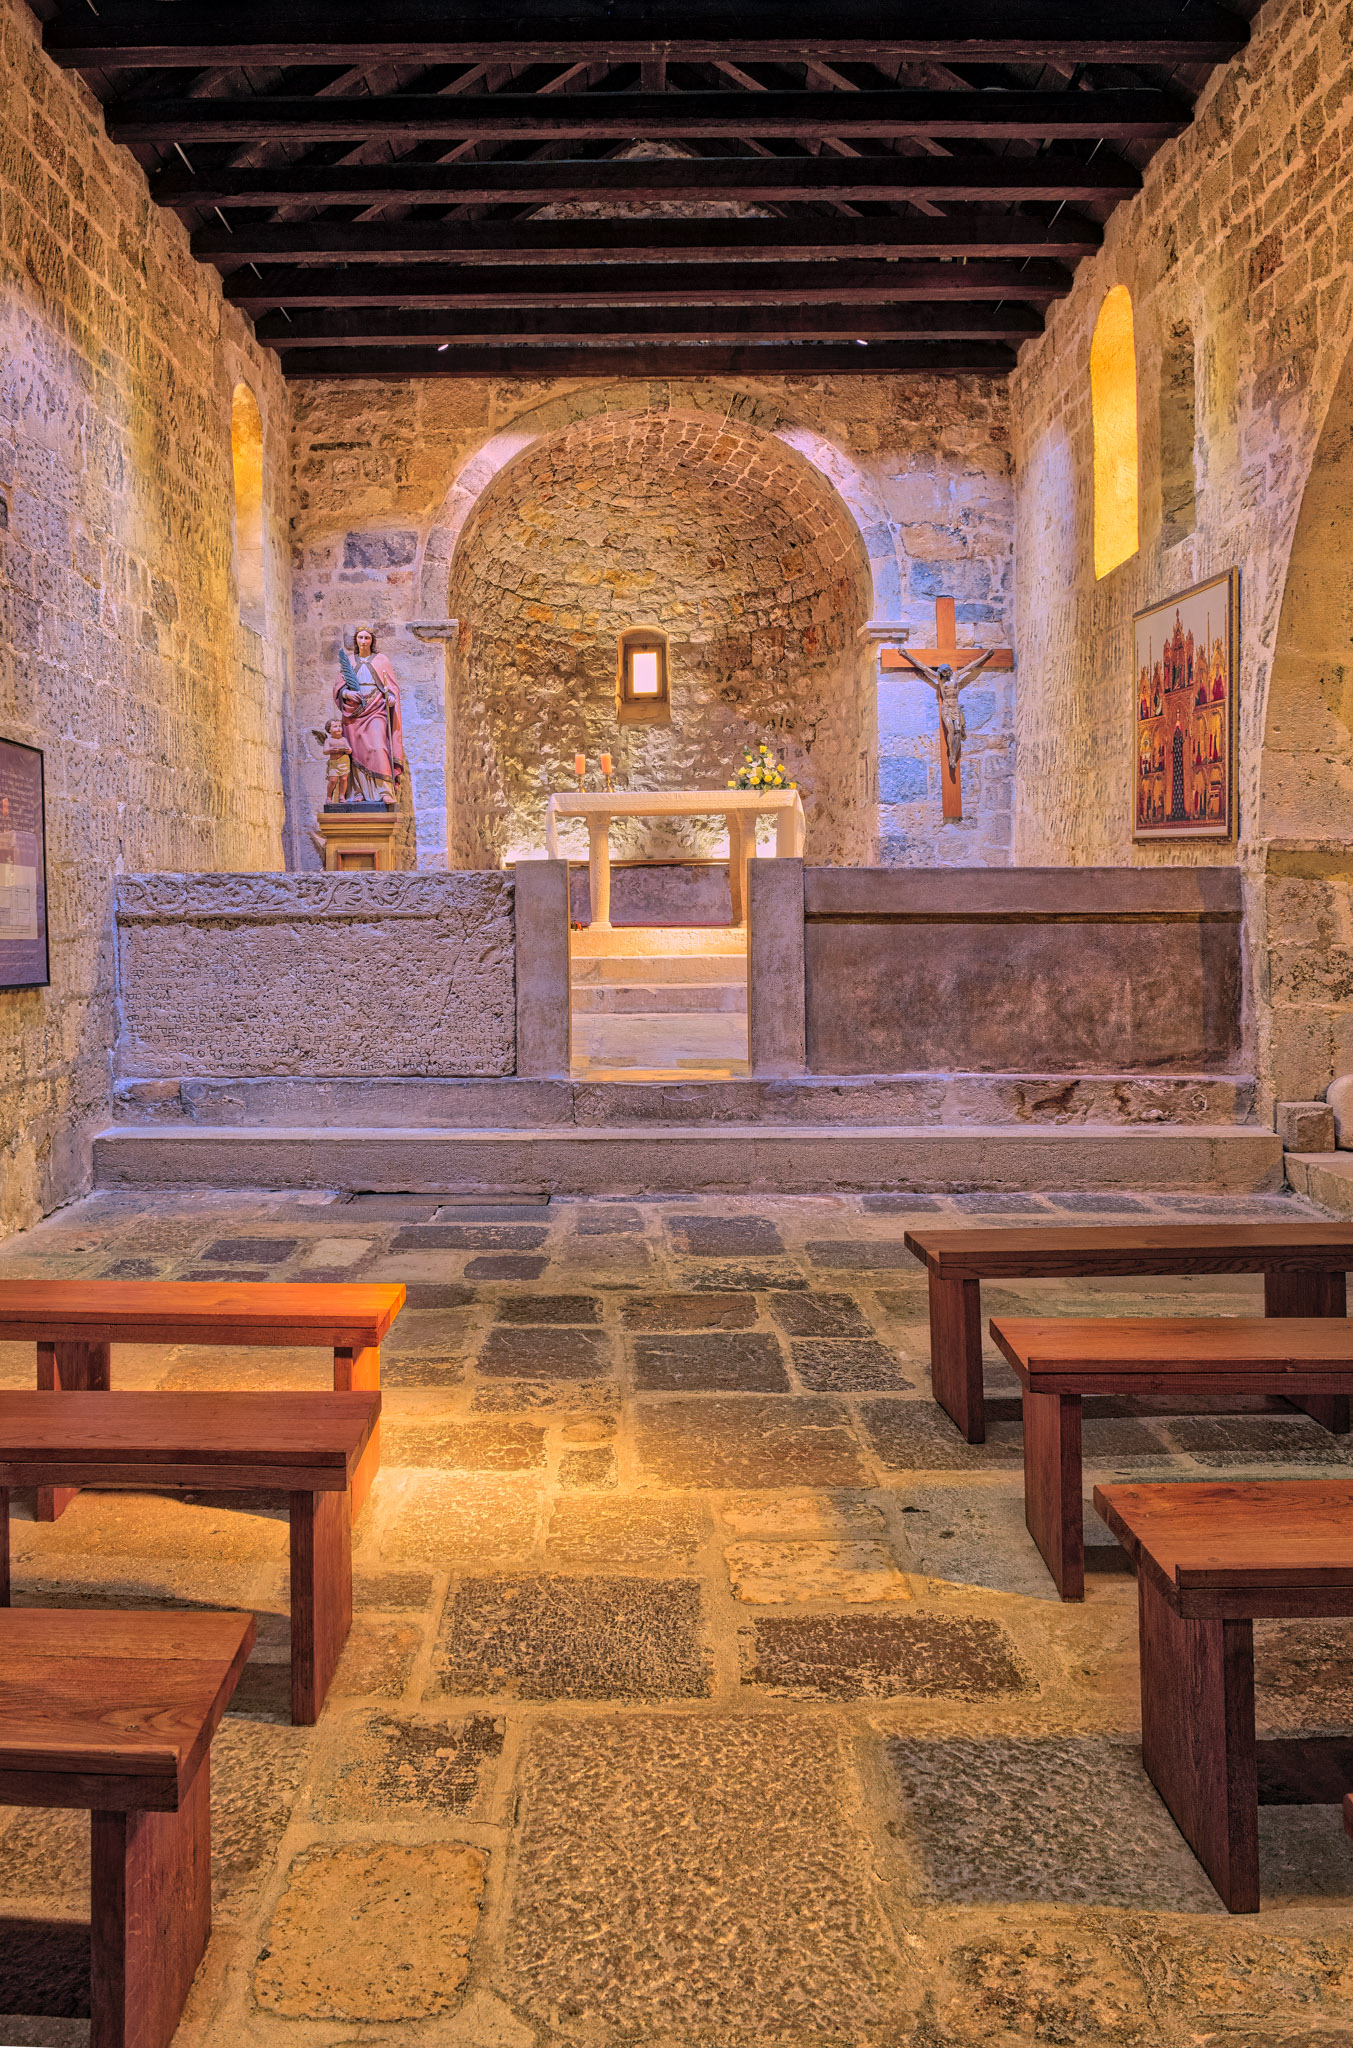 The interior of the Church of St. Lucy with a reproduction of the Baska Tablet set into the low wall separating the chancel from the nave.